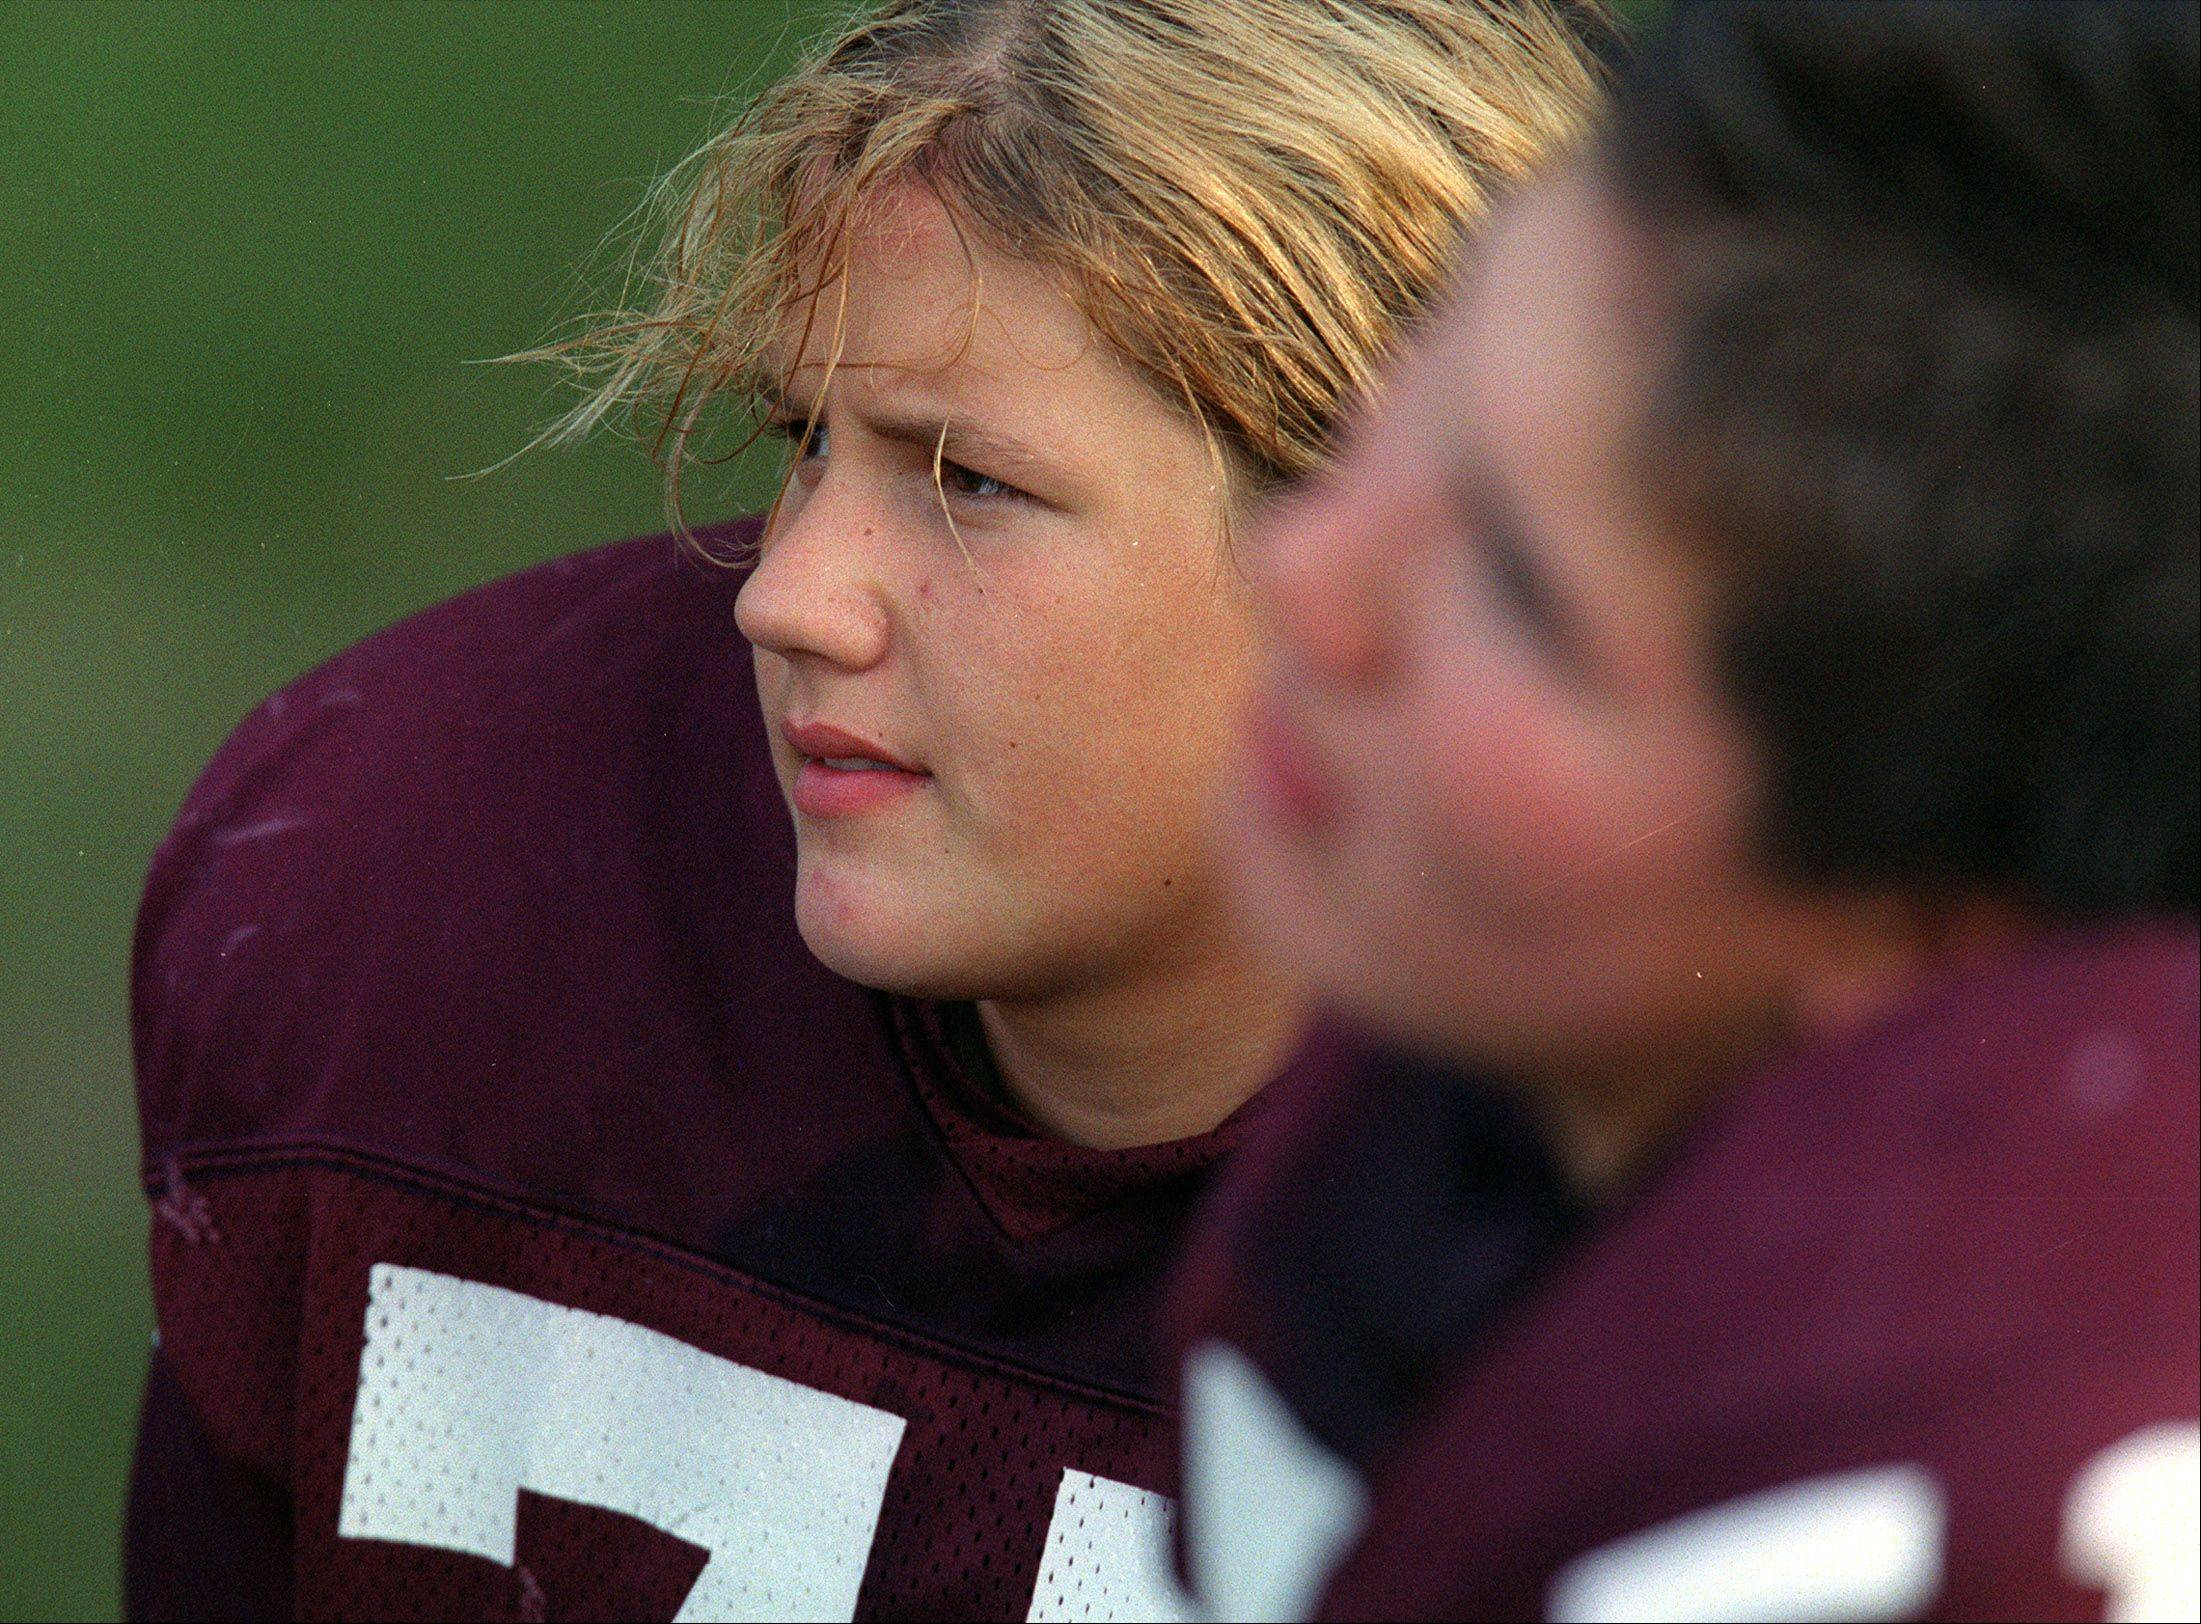 Adrianna Delhotal eventually played football at Elgin High School.